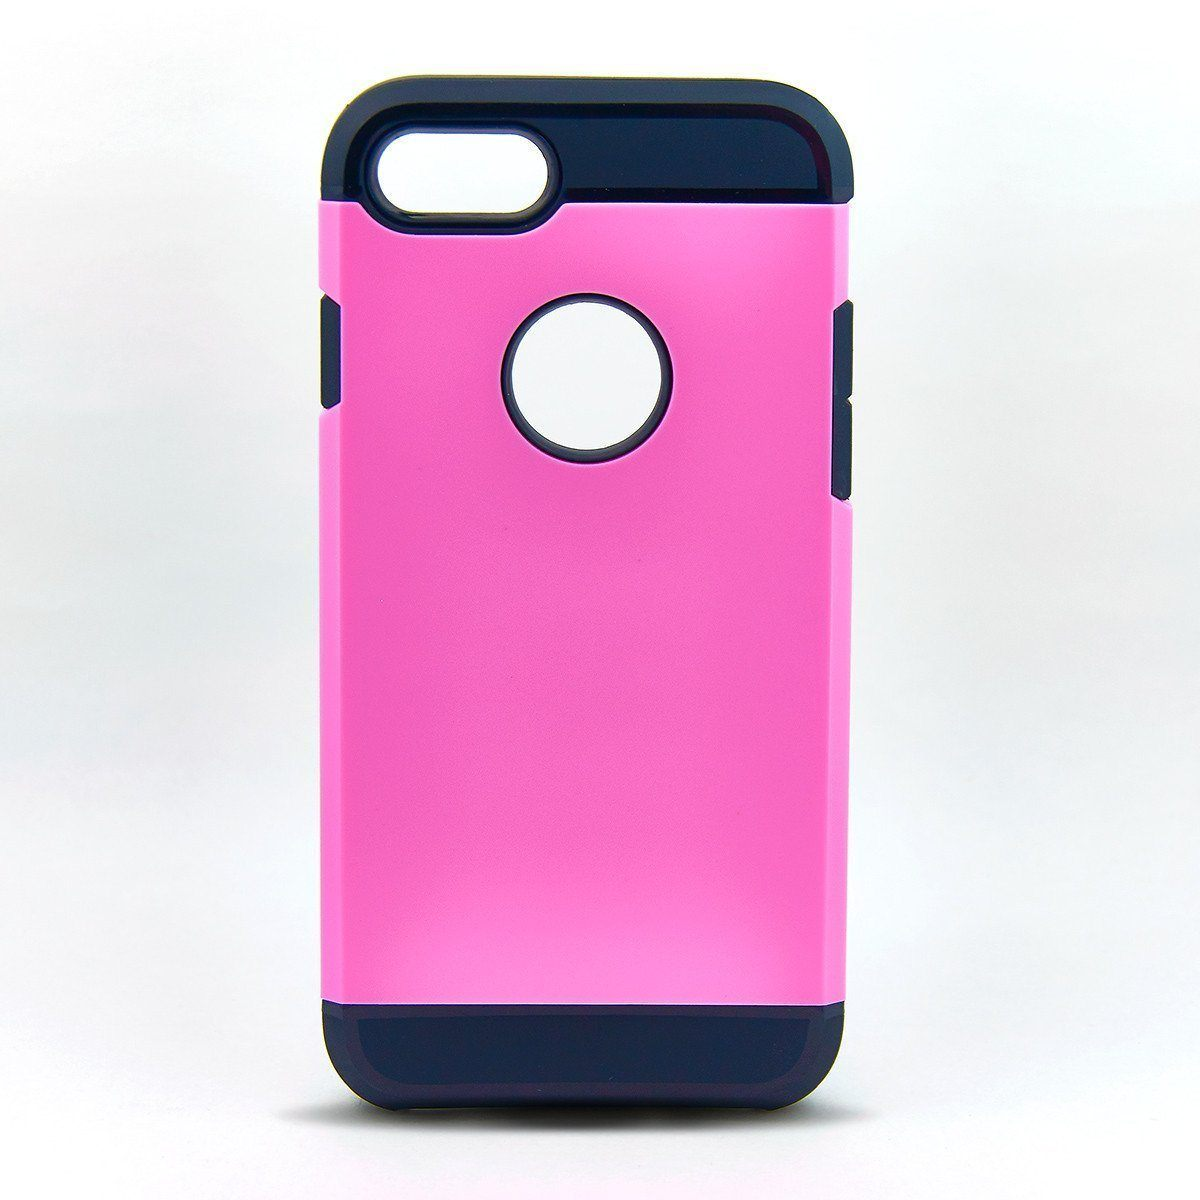 Color Case for iPhone 6 Plus - Pink